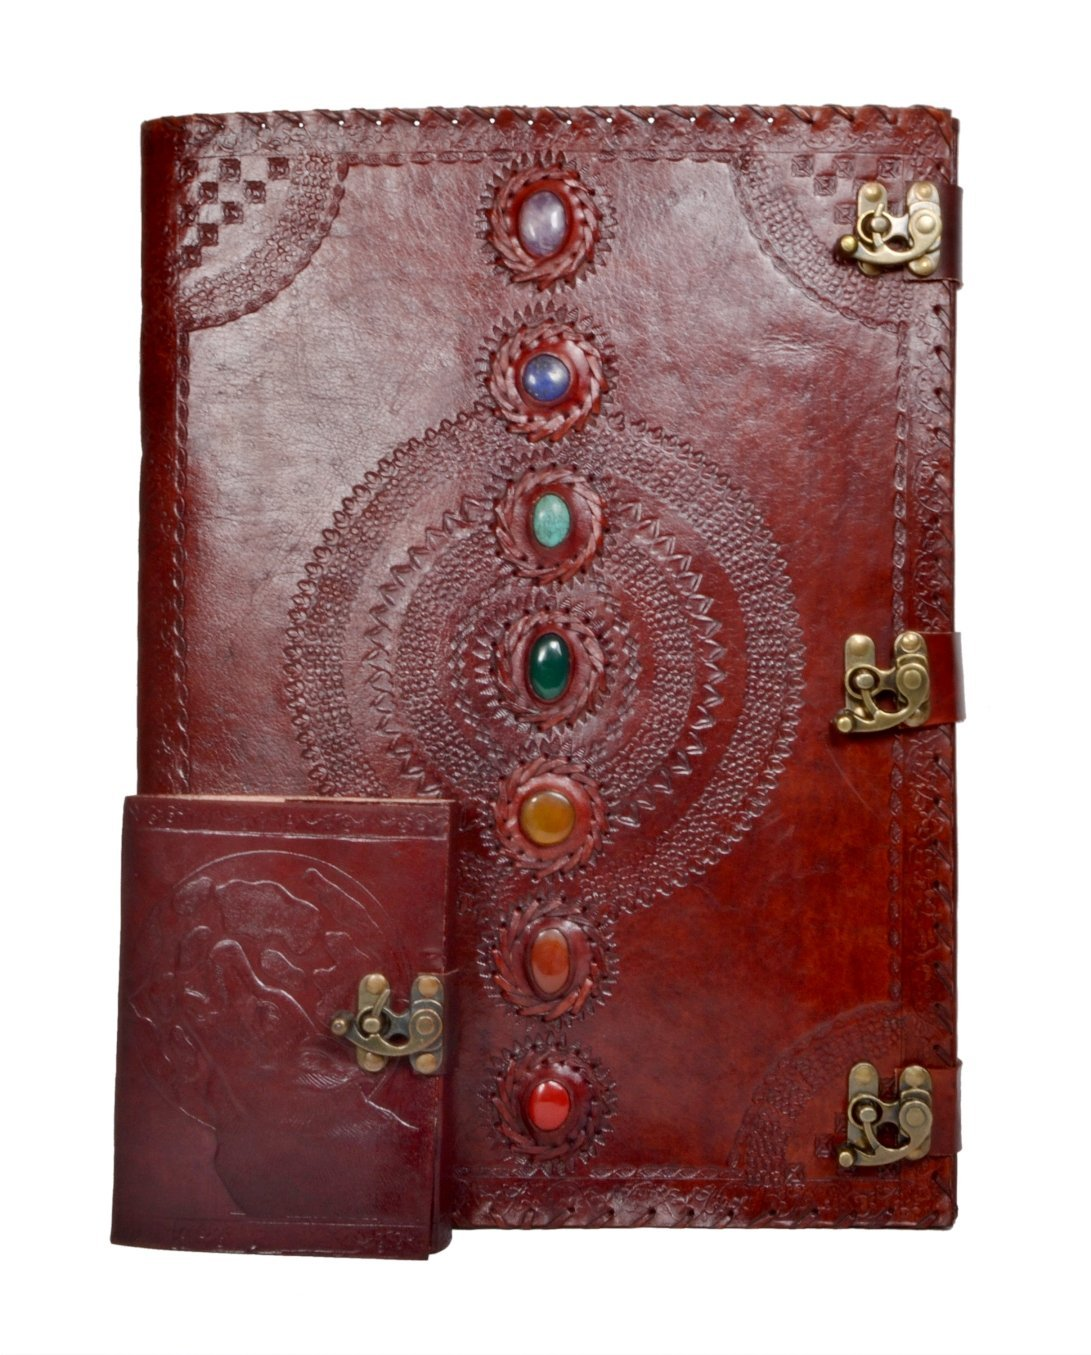 Leather Journal Seven Chakra Medieval Stone Embossed Diary with Moon Wolf Embossed Handmade Notebook Travel For Men & Women Antique Quality Paper Perfect for Notes Sketchbook